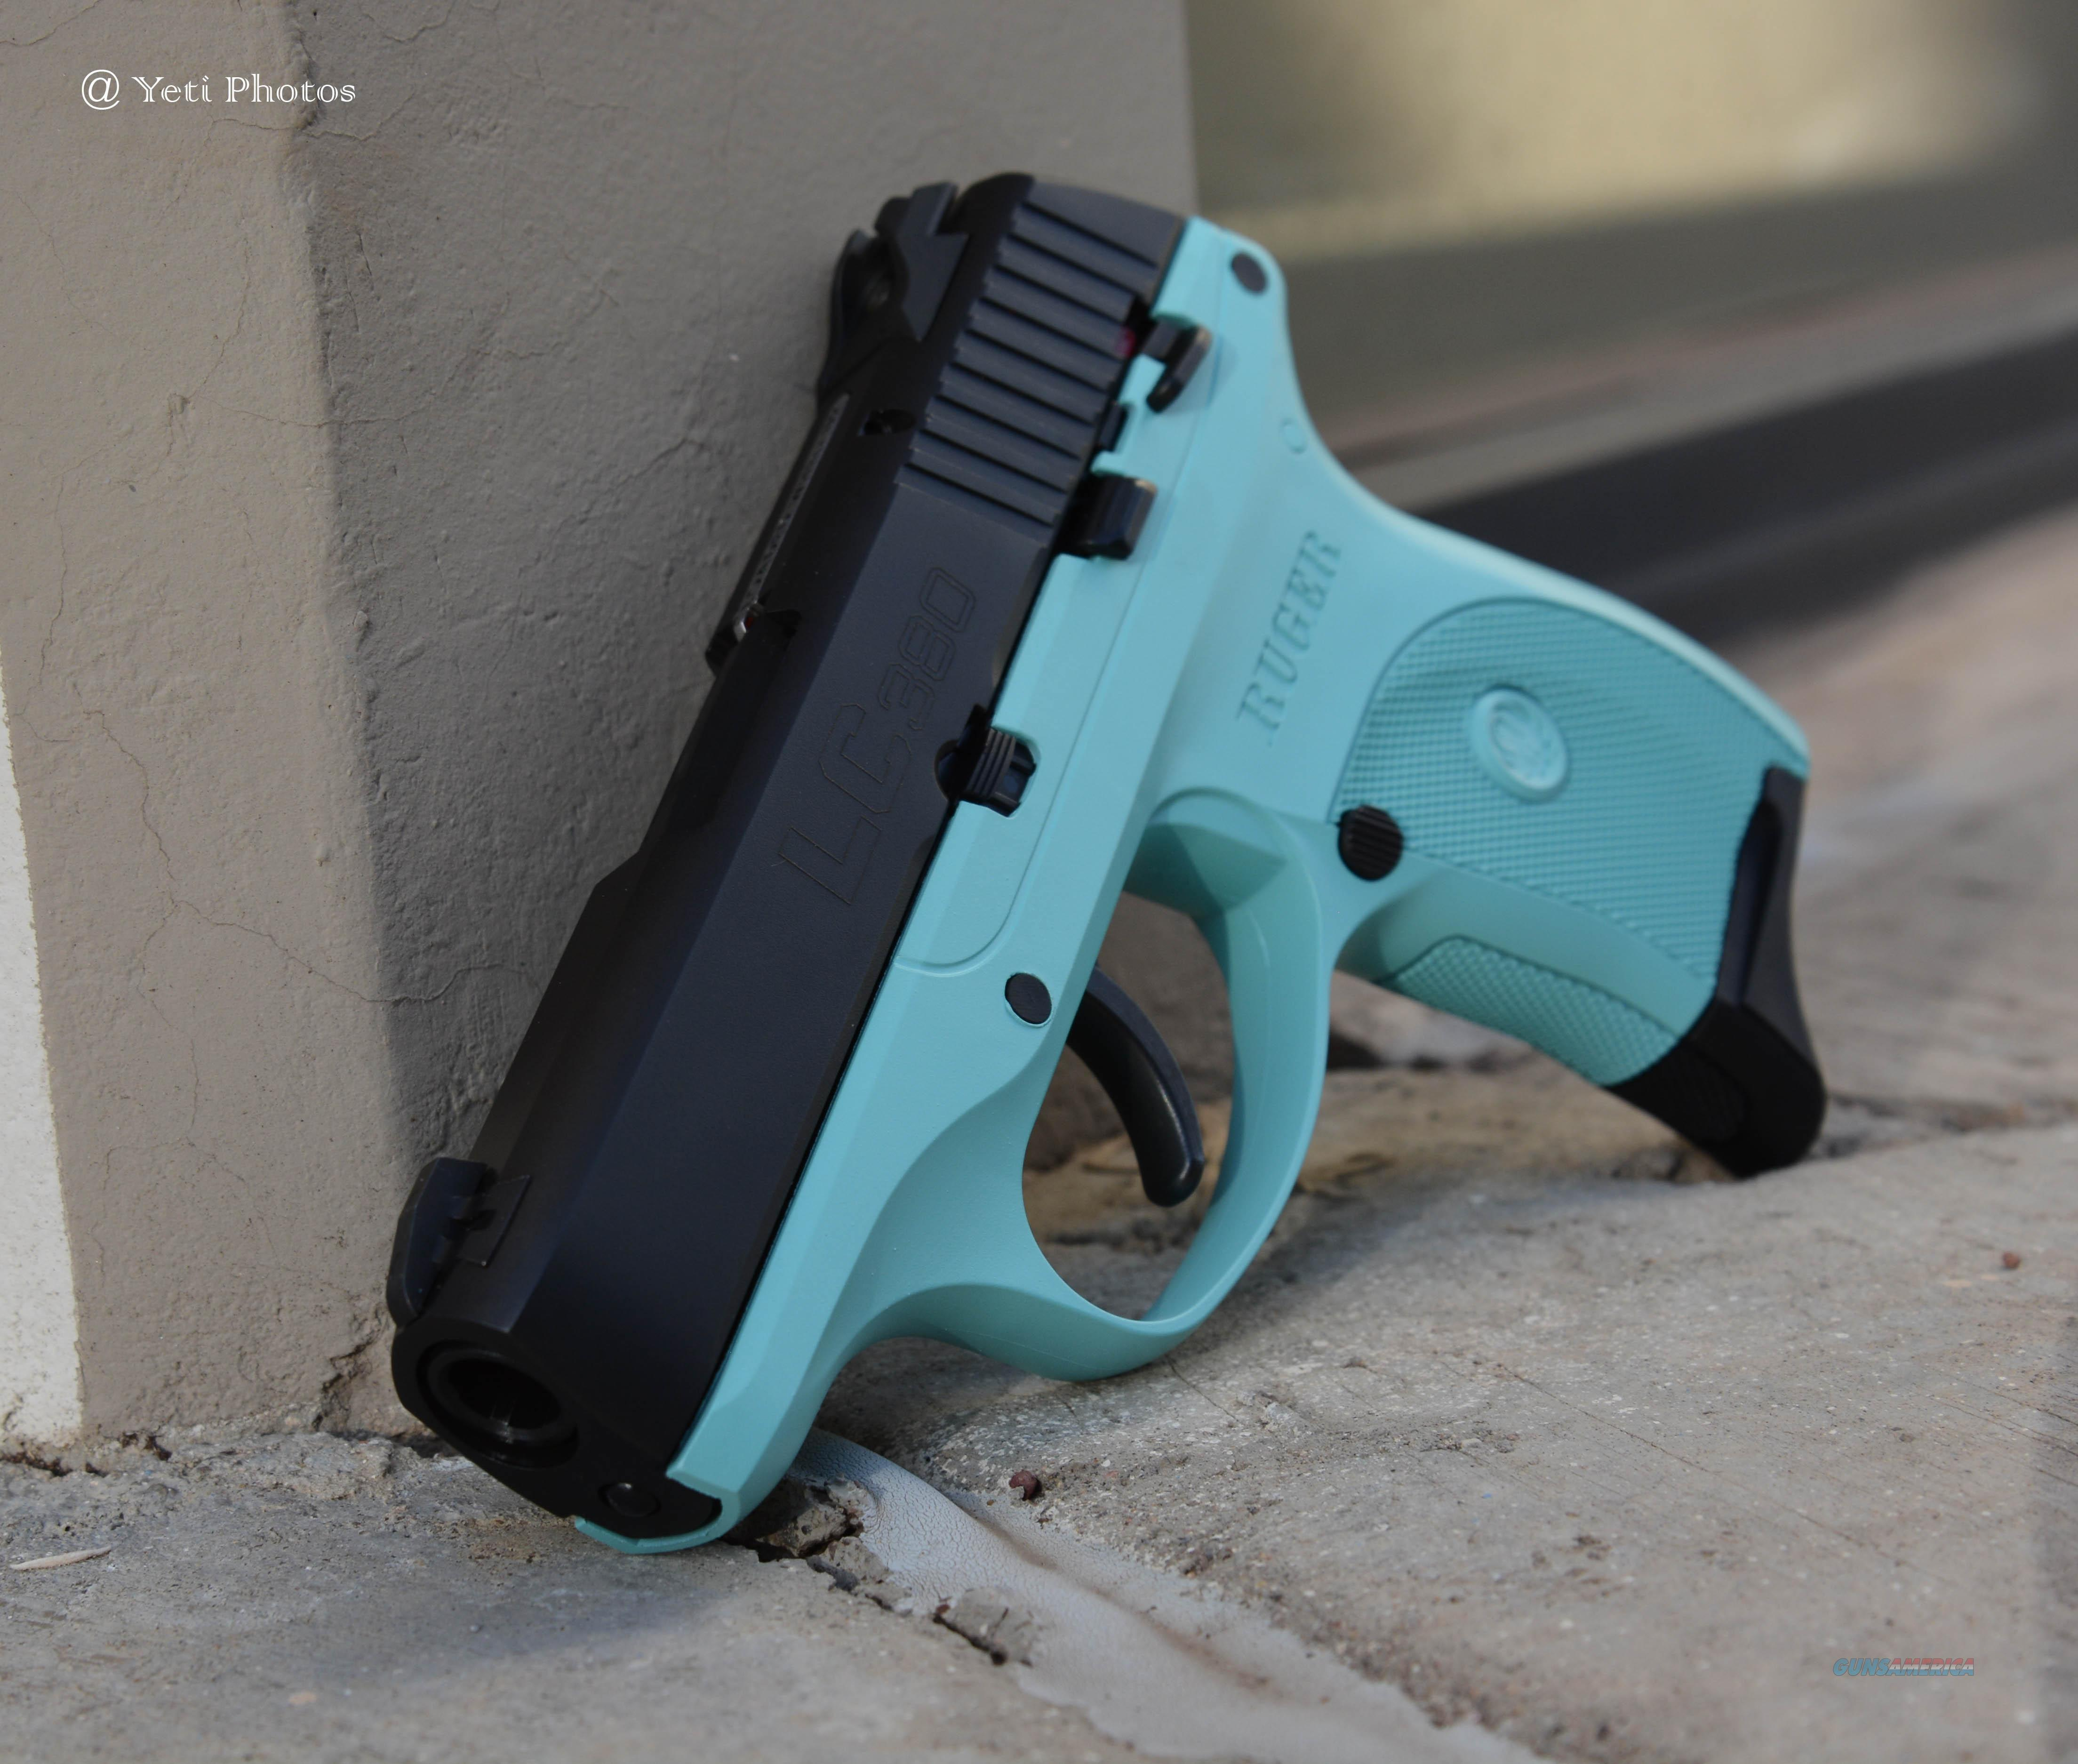 X-Werks Ruger LC380 robin's egg blue Frame .380 ACP  Guns > Pistols > Ruger Semi-Auto Pistols > LCP